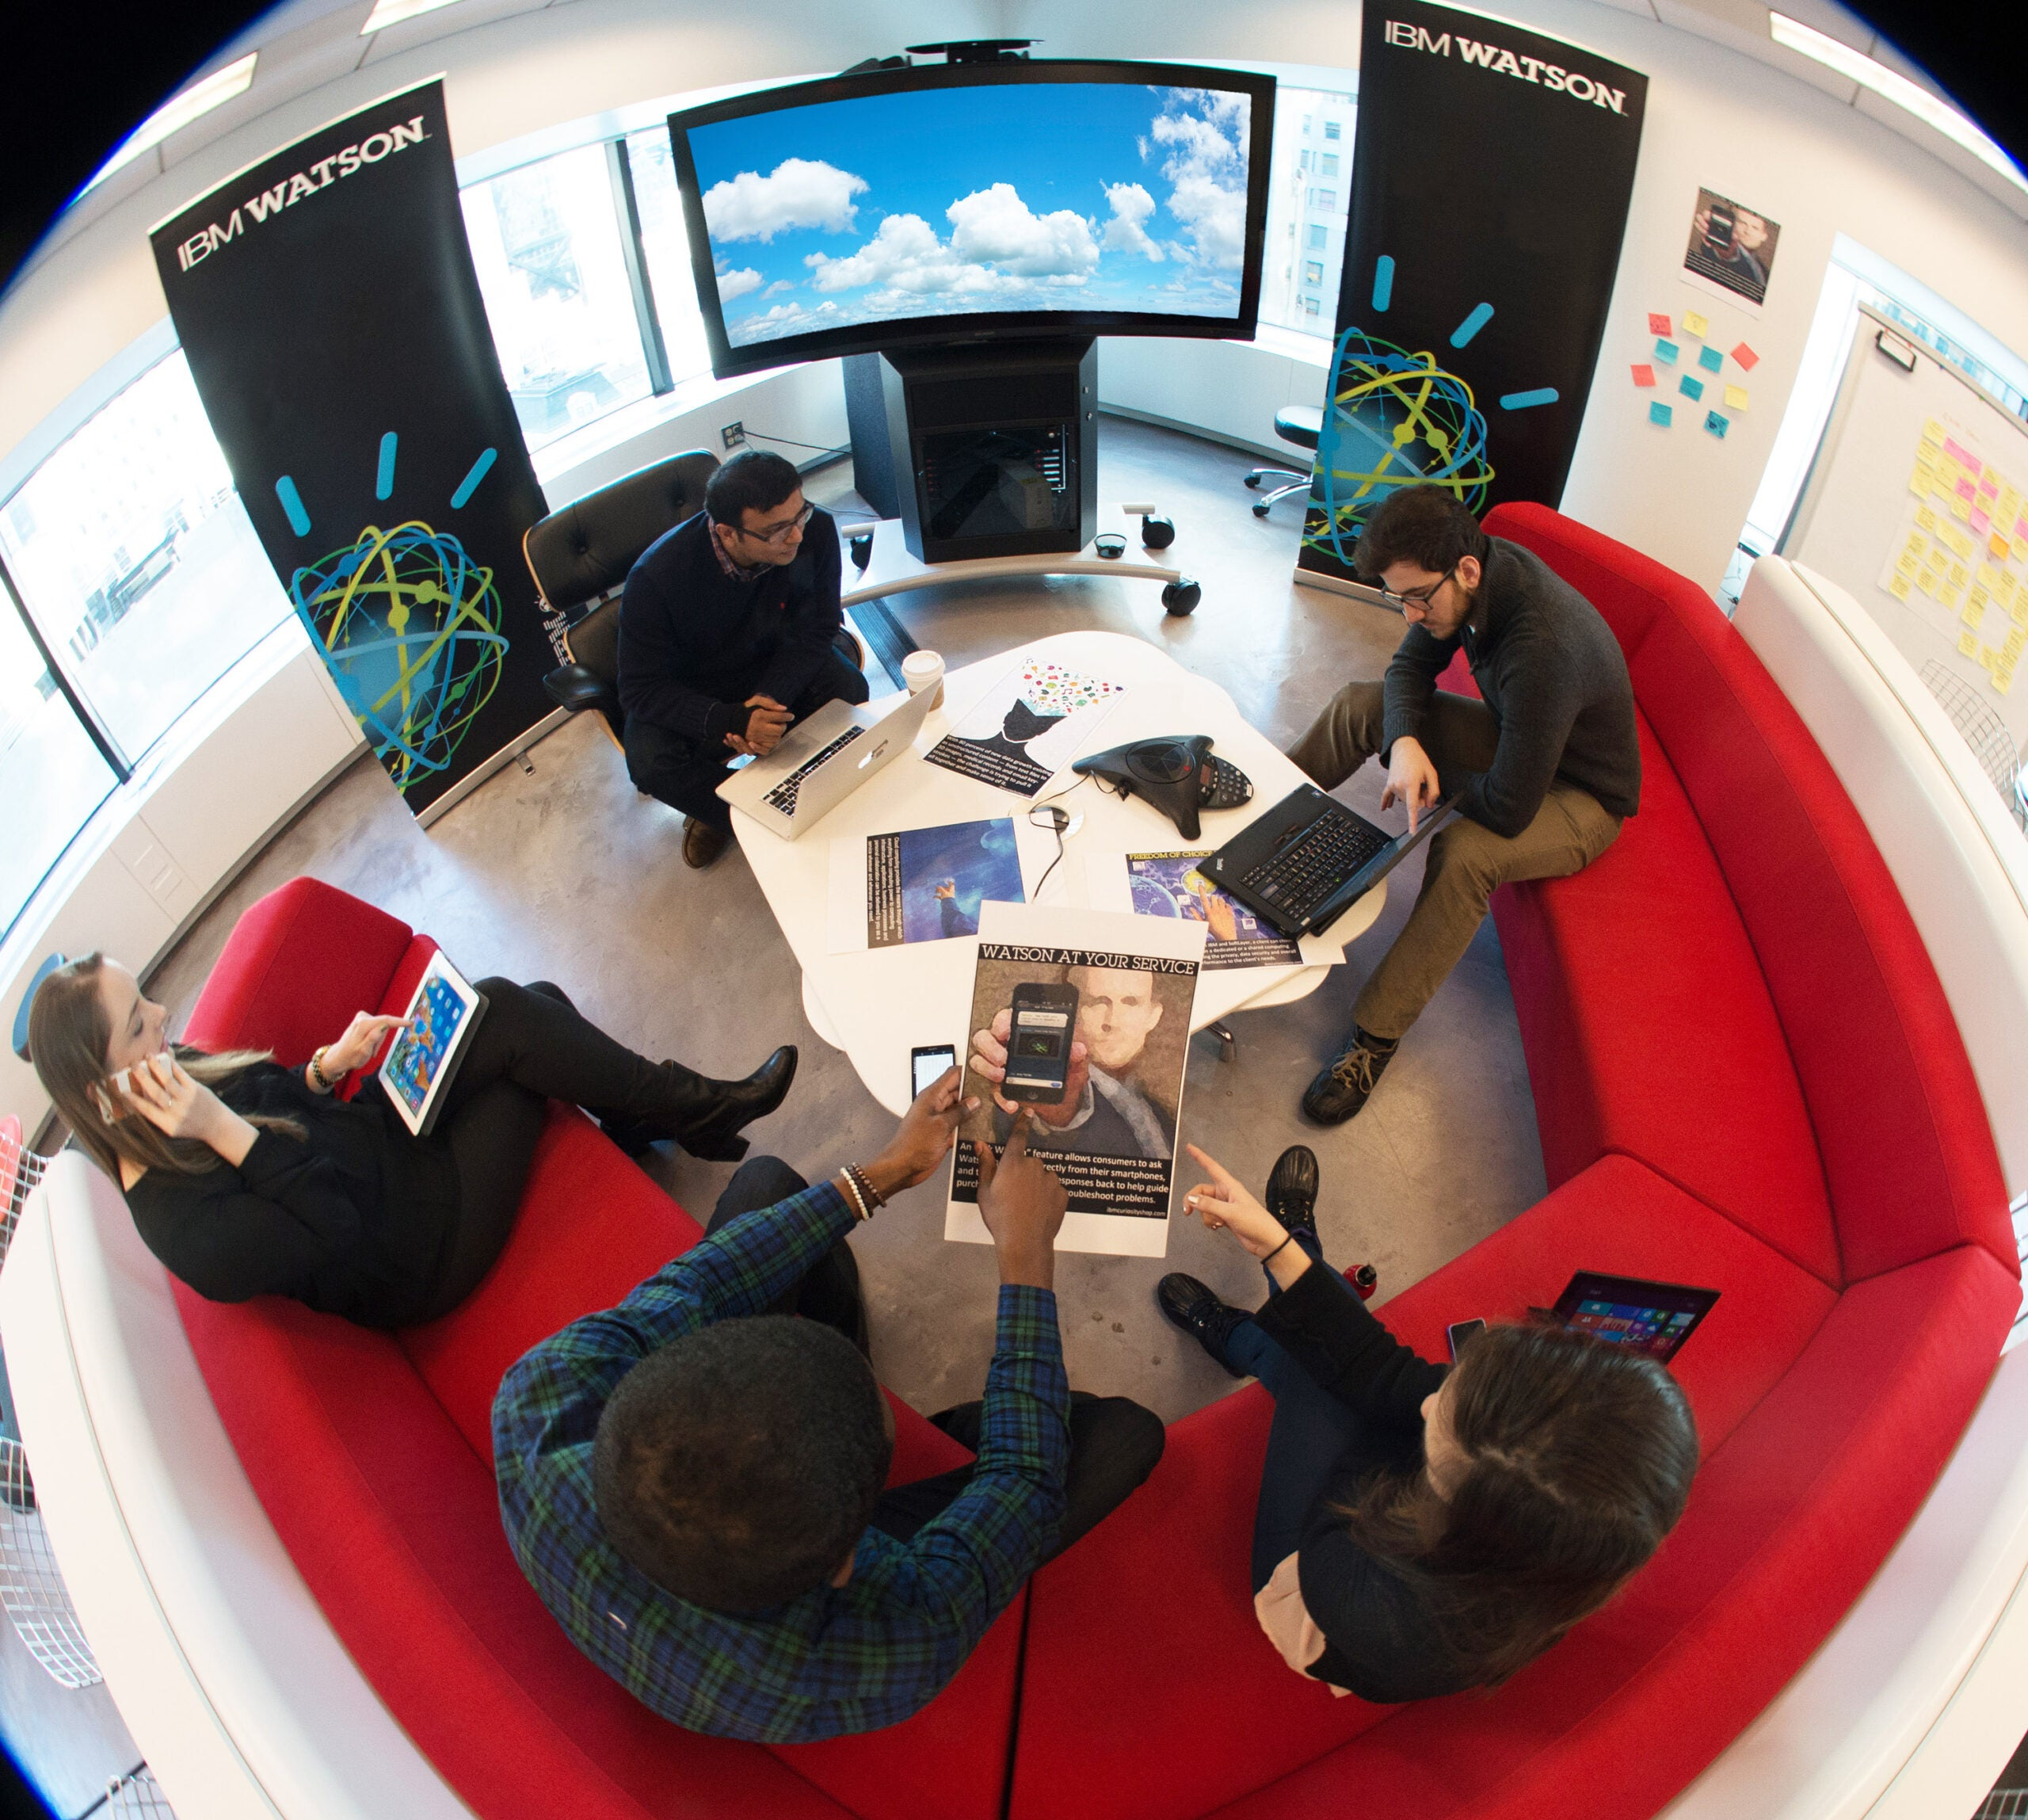 IBM's Watson Helps Run Your Business Meetings